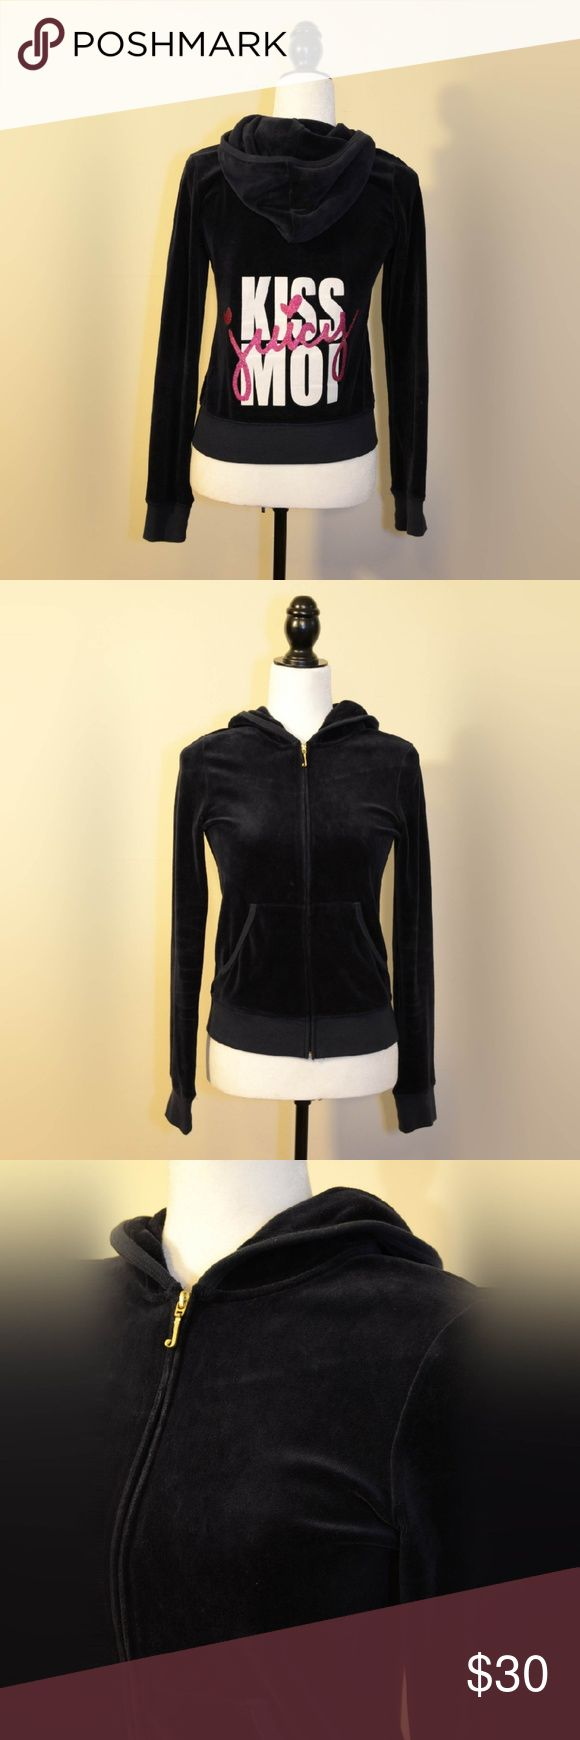 Juicy Couture Super Rare Velour Jacket Super cute and hard to find Juicy Couture velour jacket. Velour jackets are making a huge comeback and trending in 2017. Juicy Couture Jackets & Coats